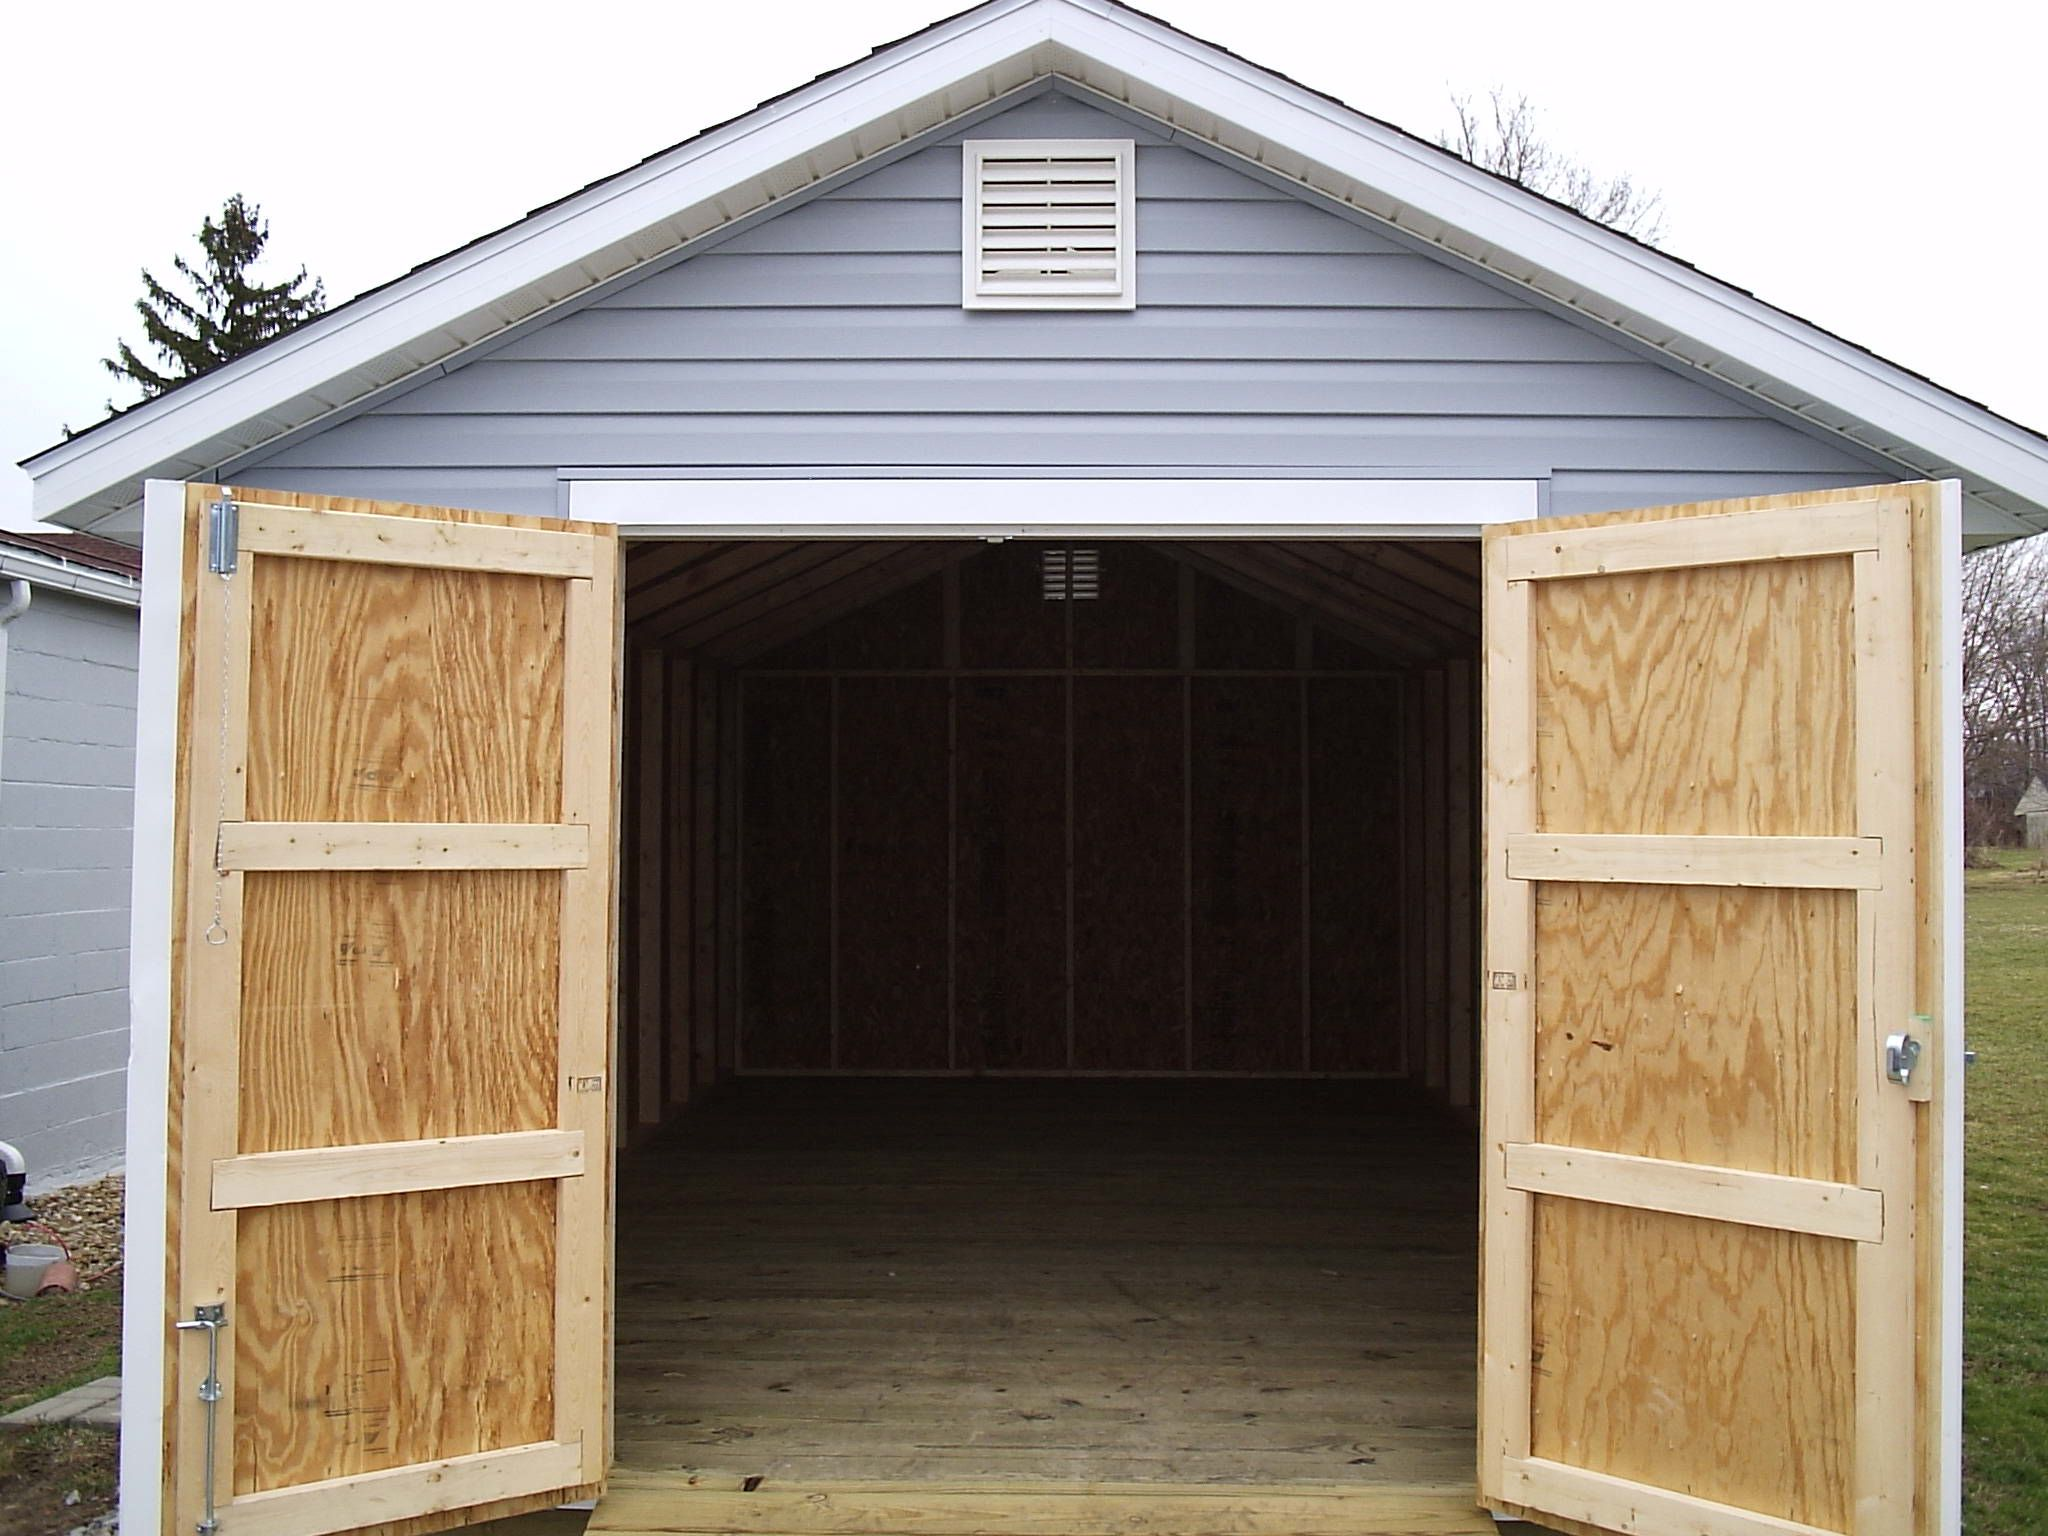 Shed Door Ideas shed door design ideas shed doors easy ways to build your shed doors a visual bookmarking Shed Doors